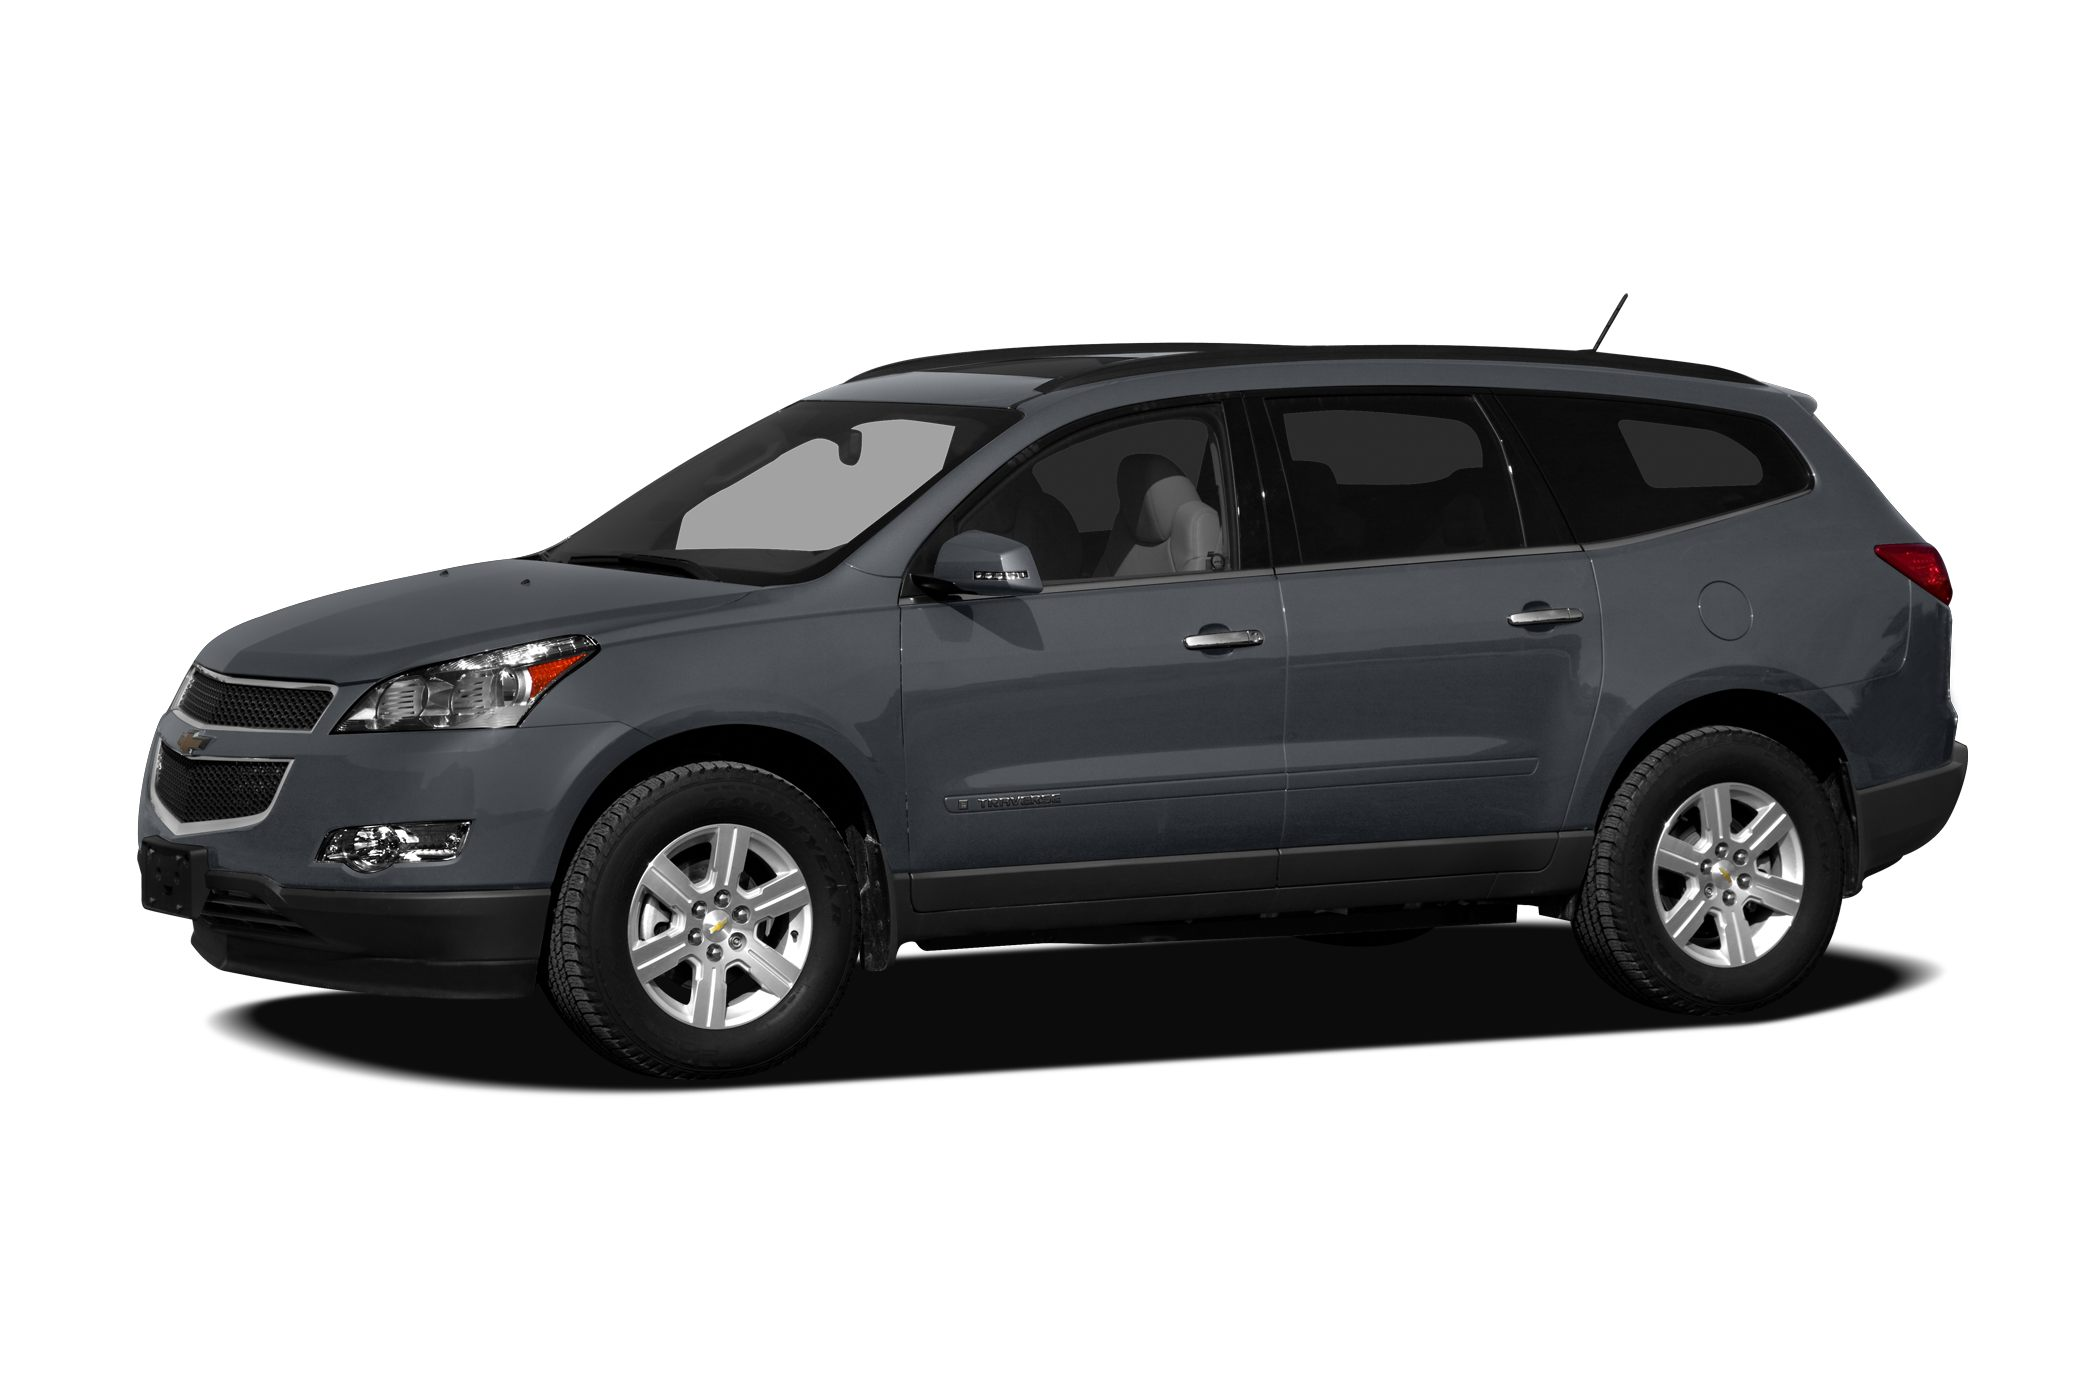 2009 Chevrolet Traverse LT SUV for sale in Gonzales for $17,500 with 67,189 miles.